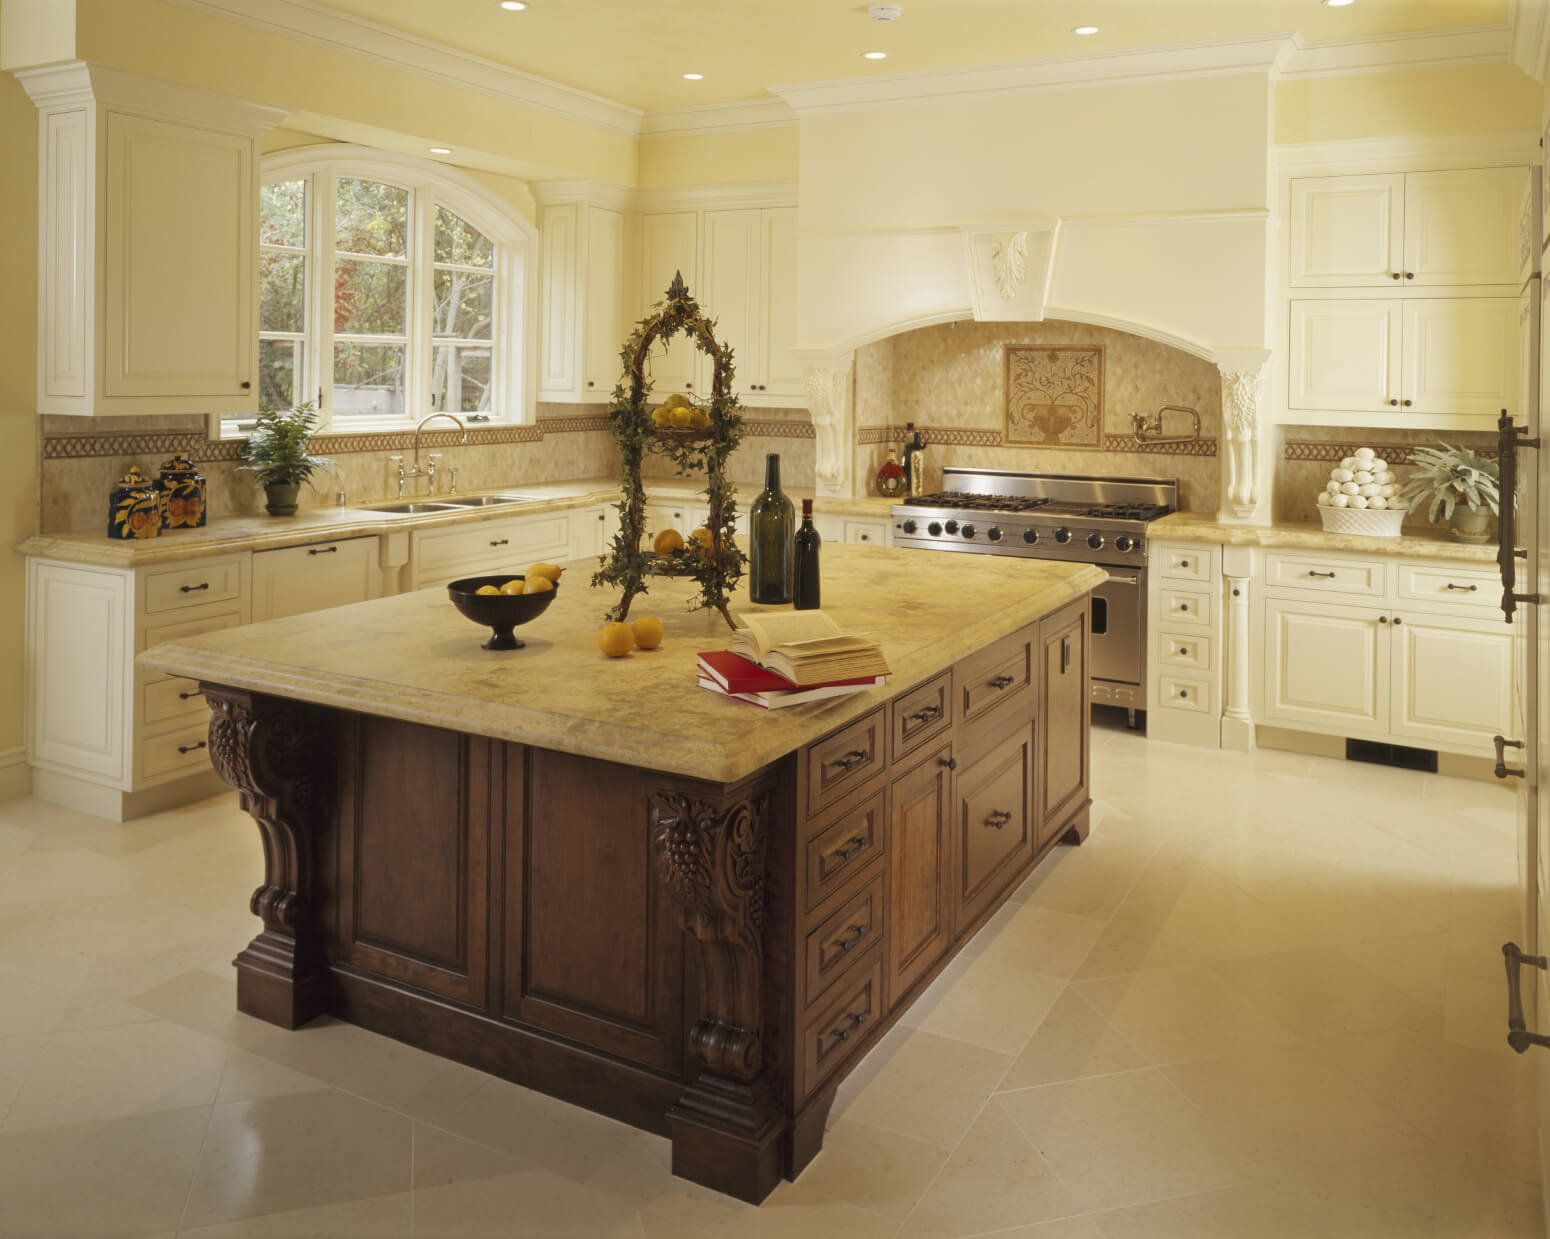 48 luxury dream kitchen designs worth every penny photos for Kitchen island cabinets